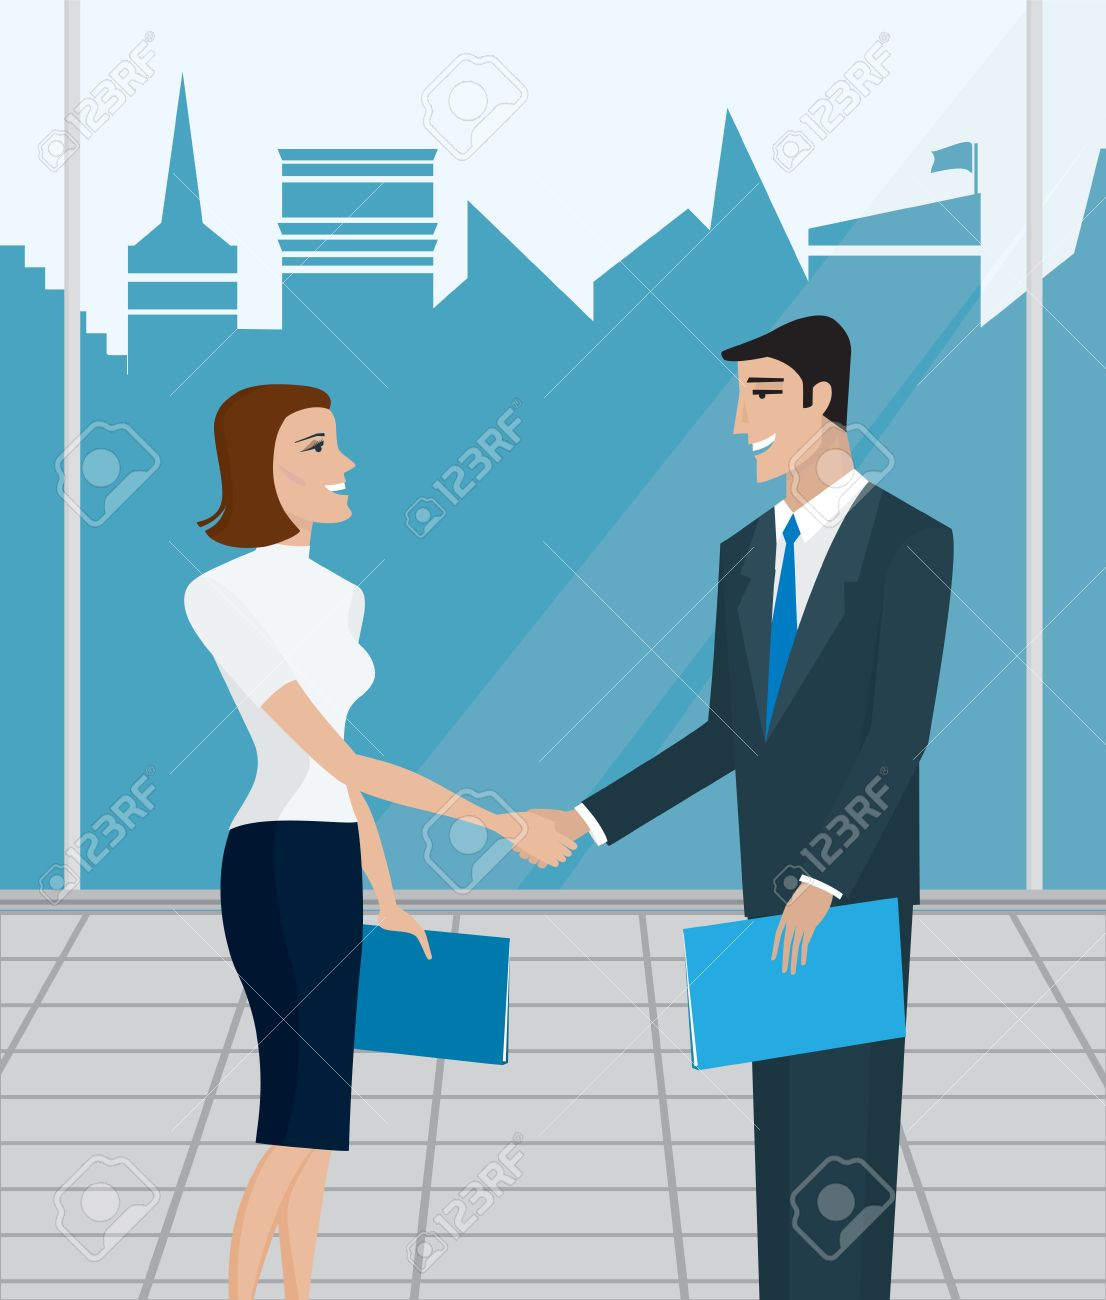 2,886 Meeting Place Stock Vector Illustration And Royalty Free.